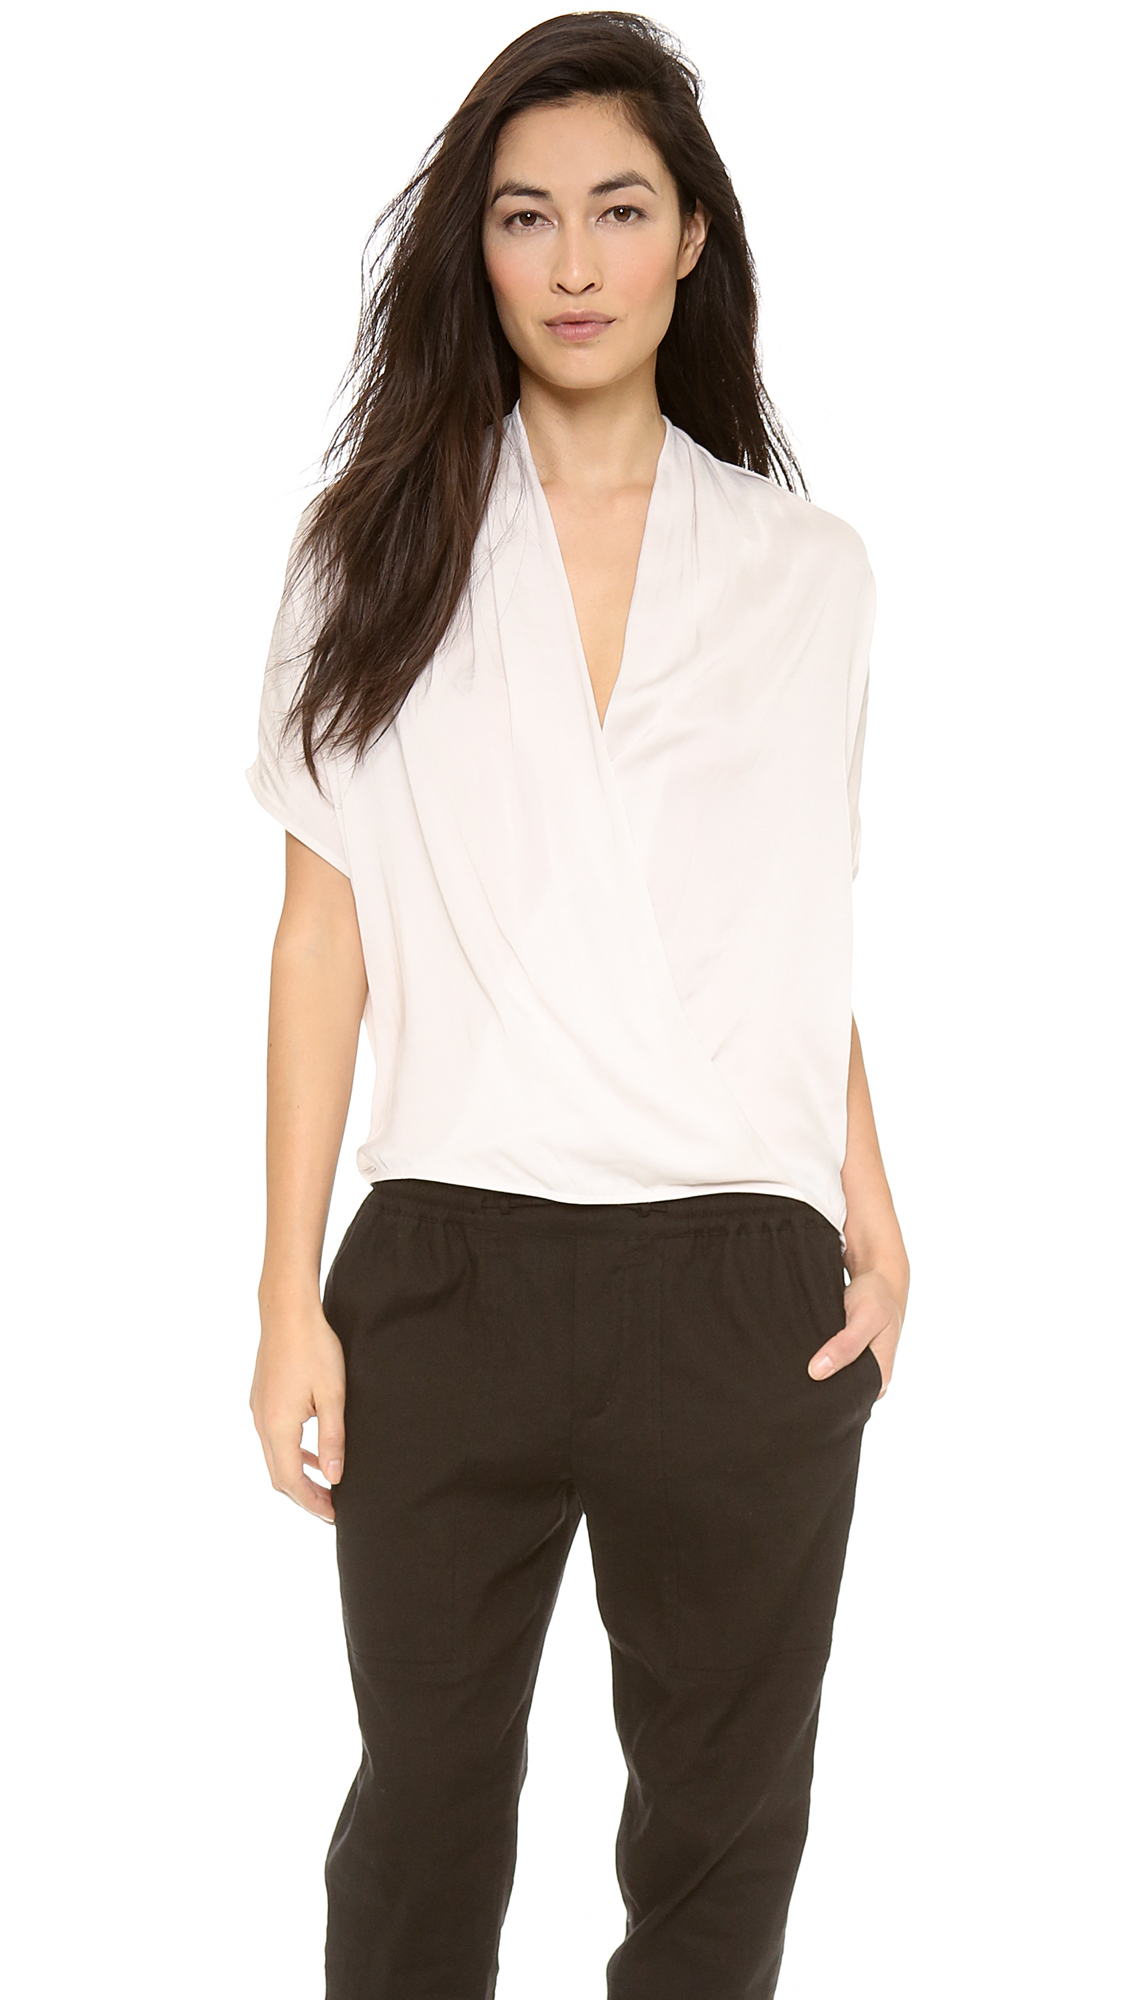 Vince Short Sleeve Wrap Blouse - Beige in Natural | Lyst